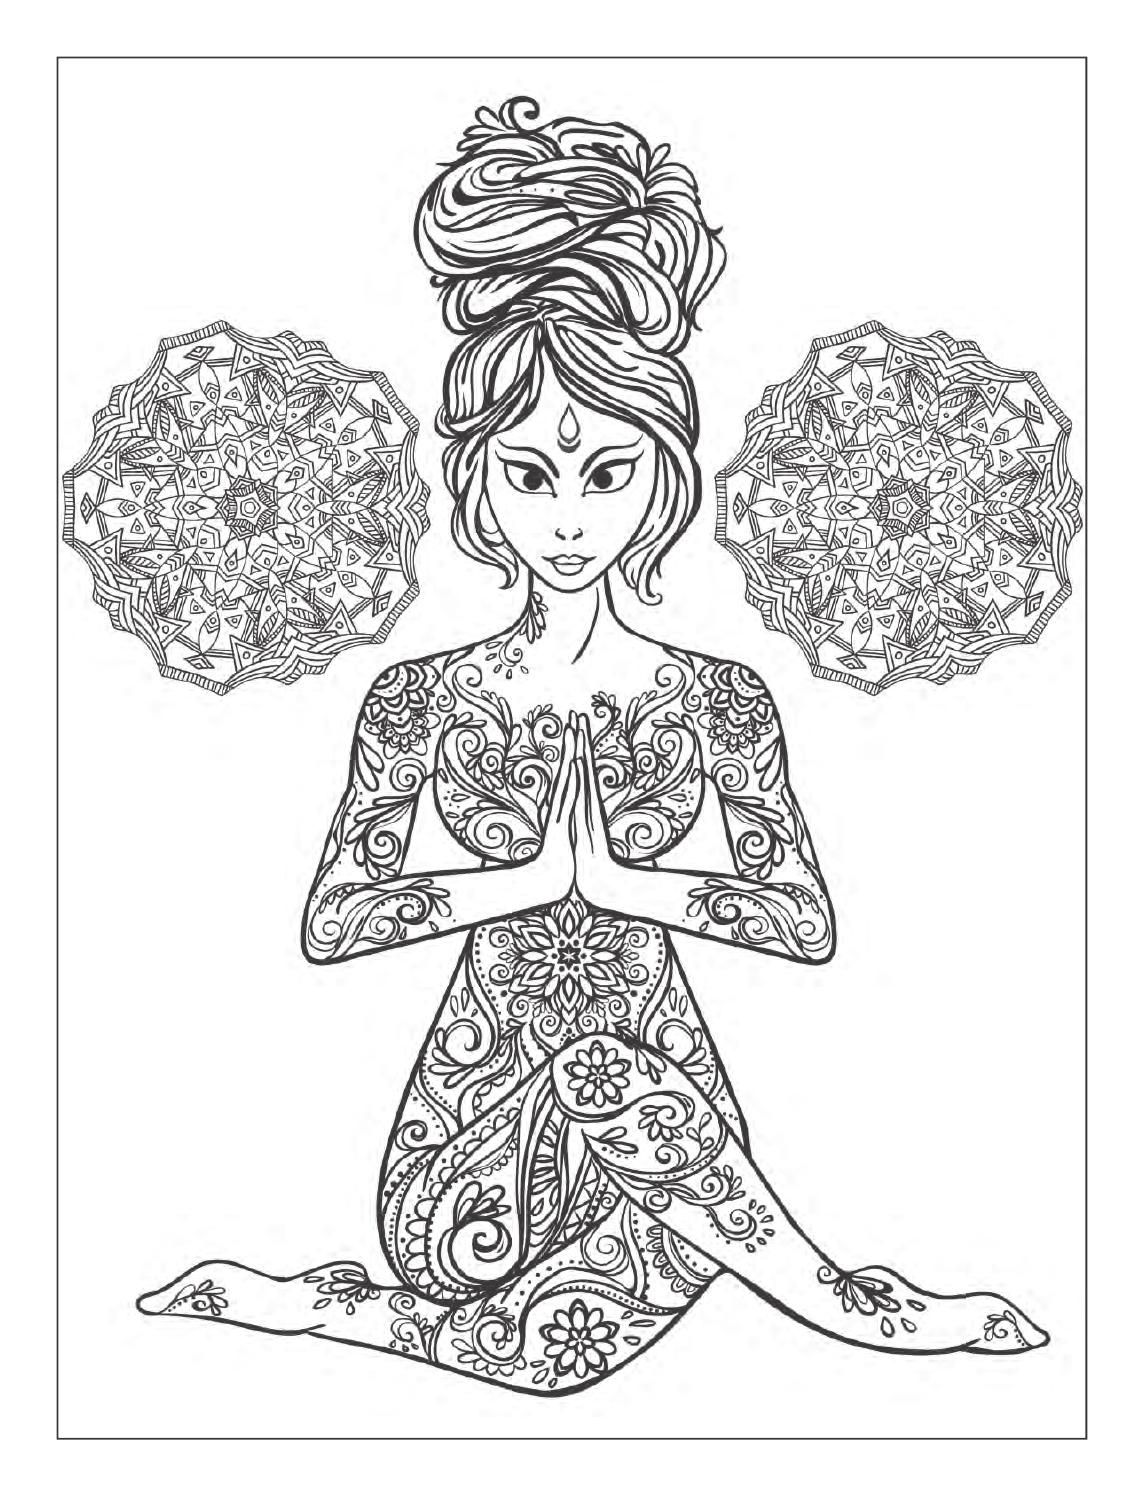 Yoga And Meditation Coloring Book For Adults With Poses